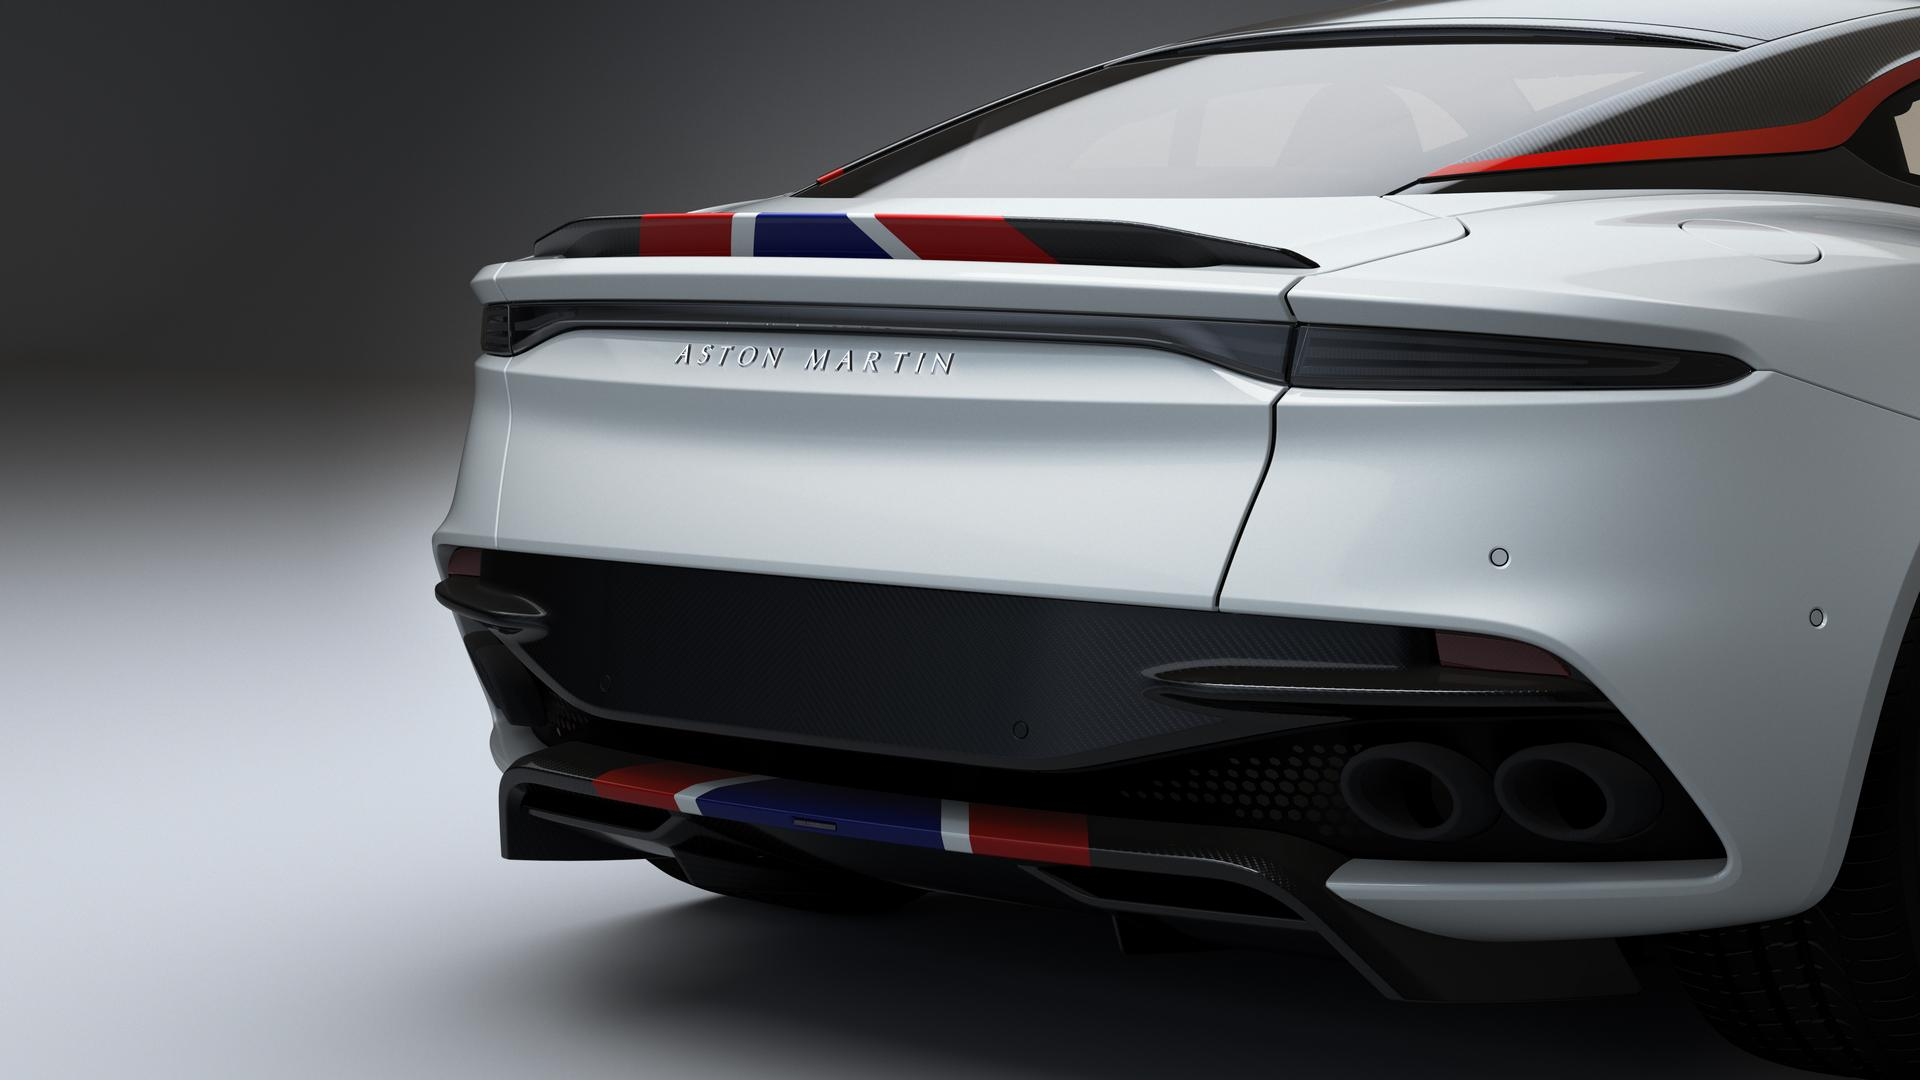 Aston Martin DBS Superleggera Concorde Edition Rear Lights